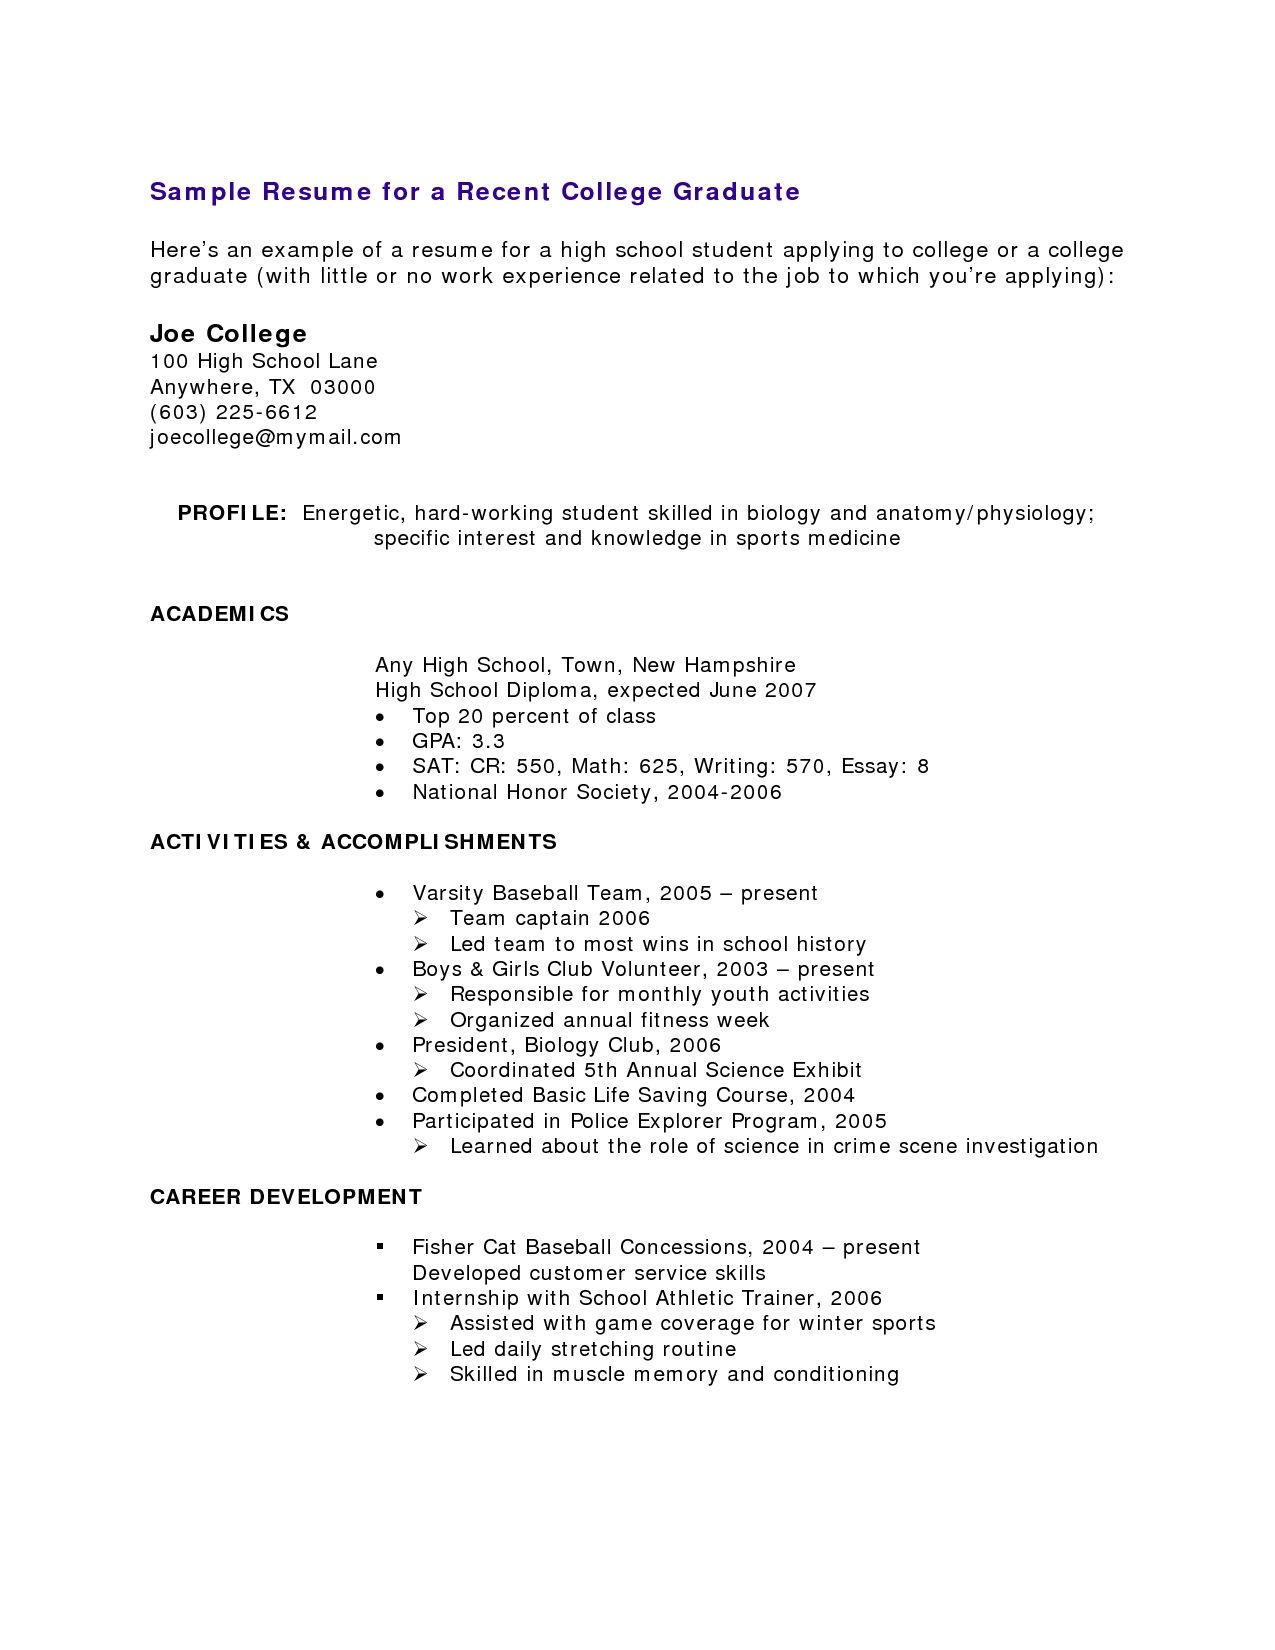 The Most High School Student Resume With No Work Experience High